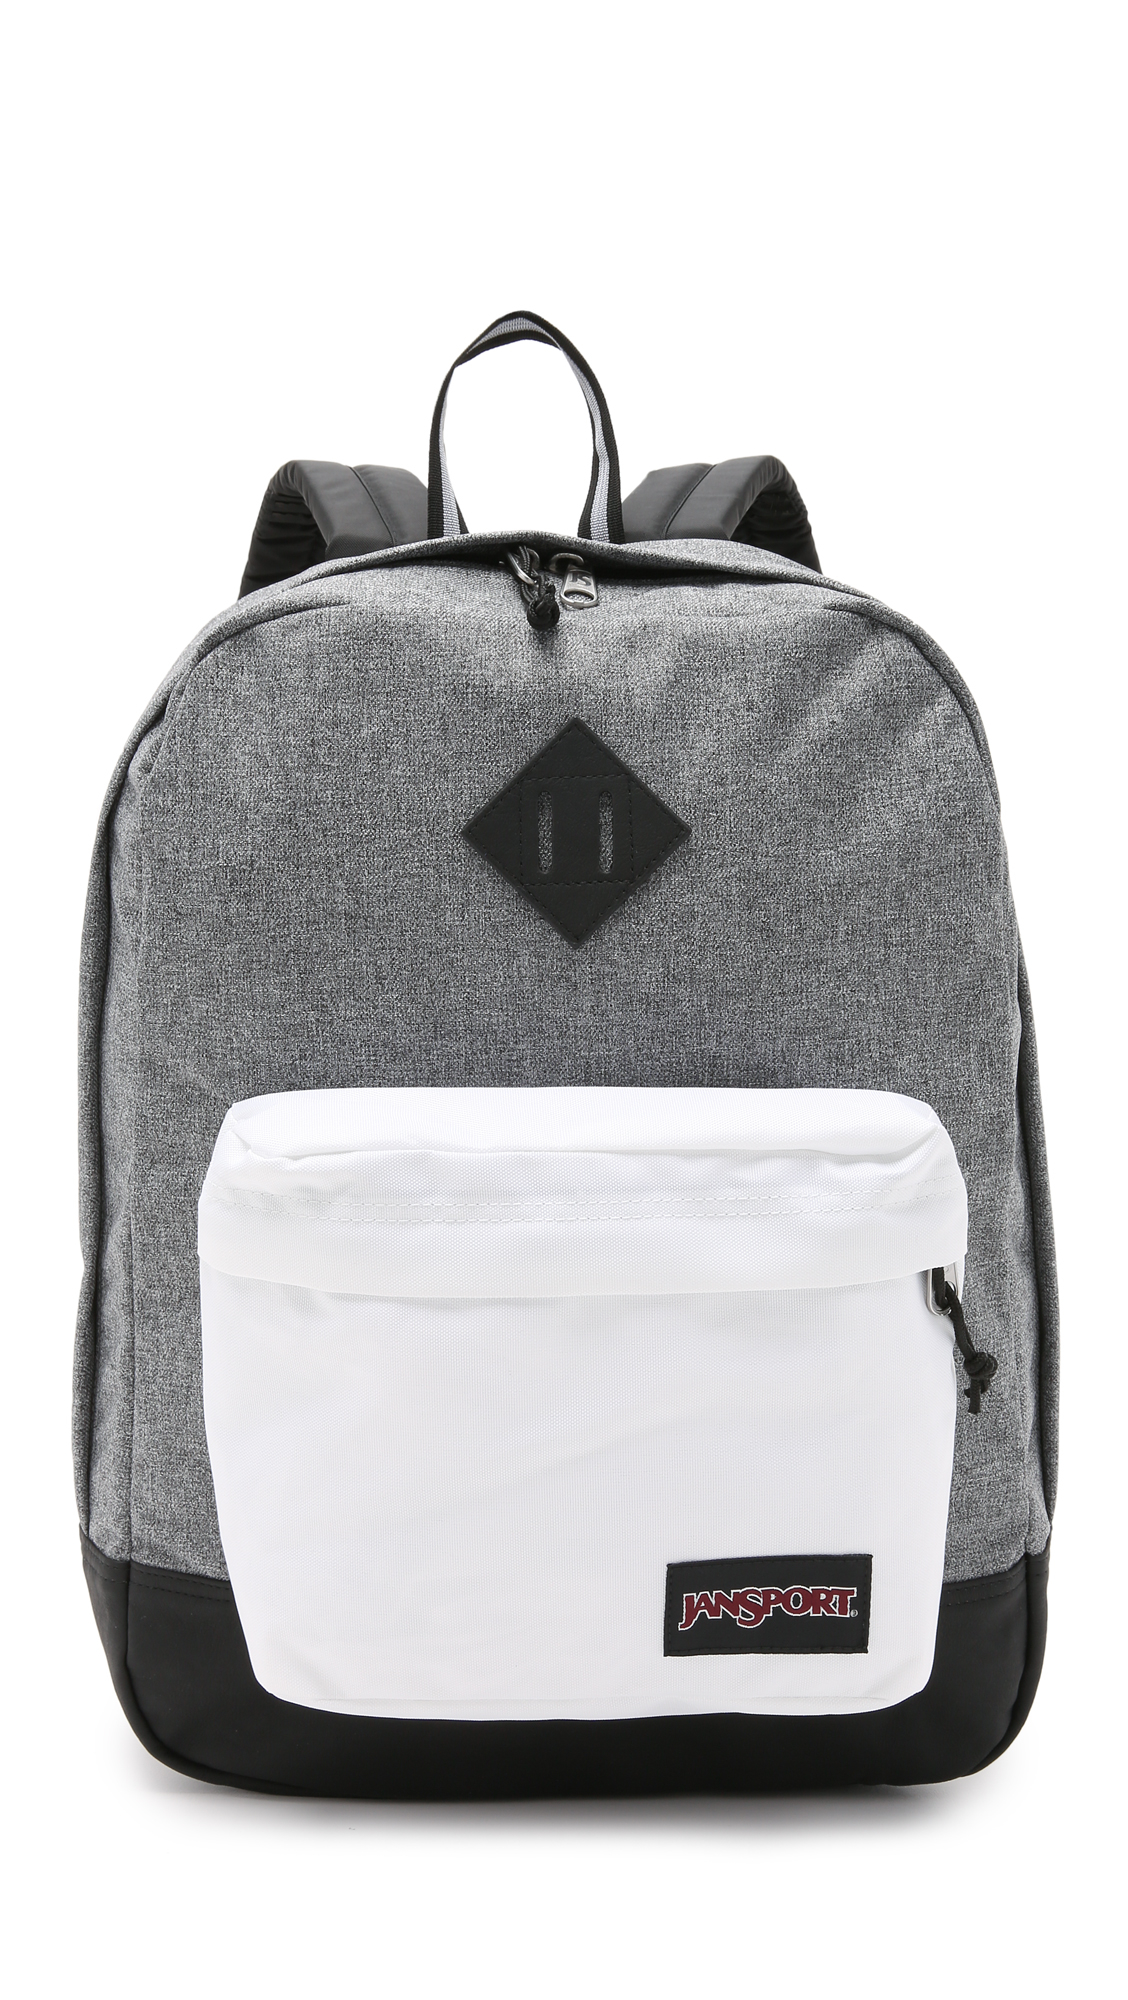 Jansport Backpacks Black And White AGJusvT2